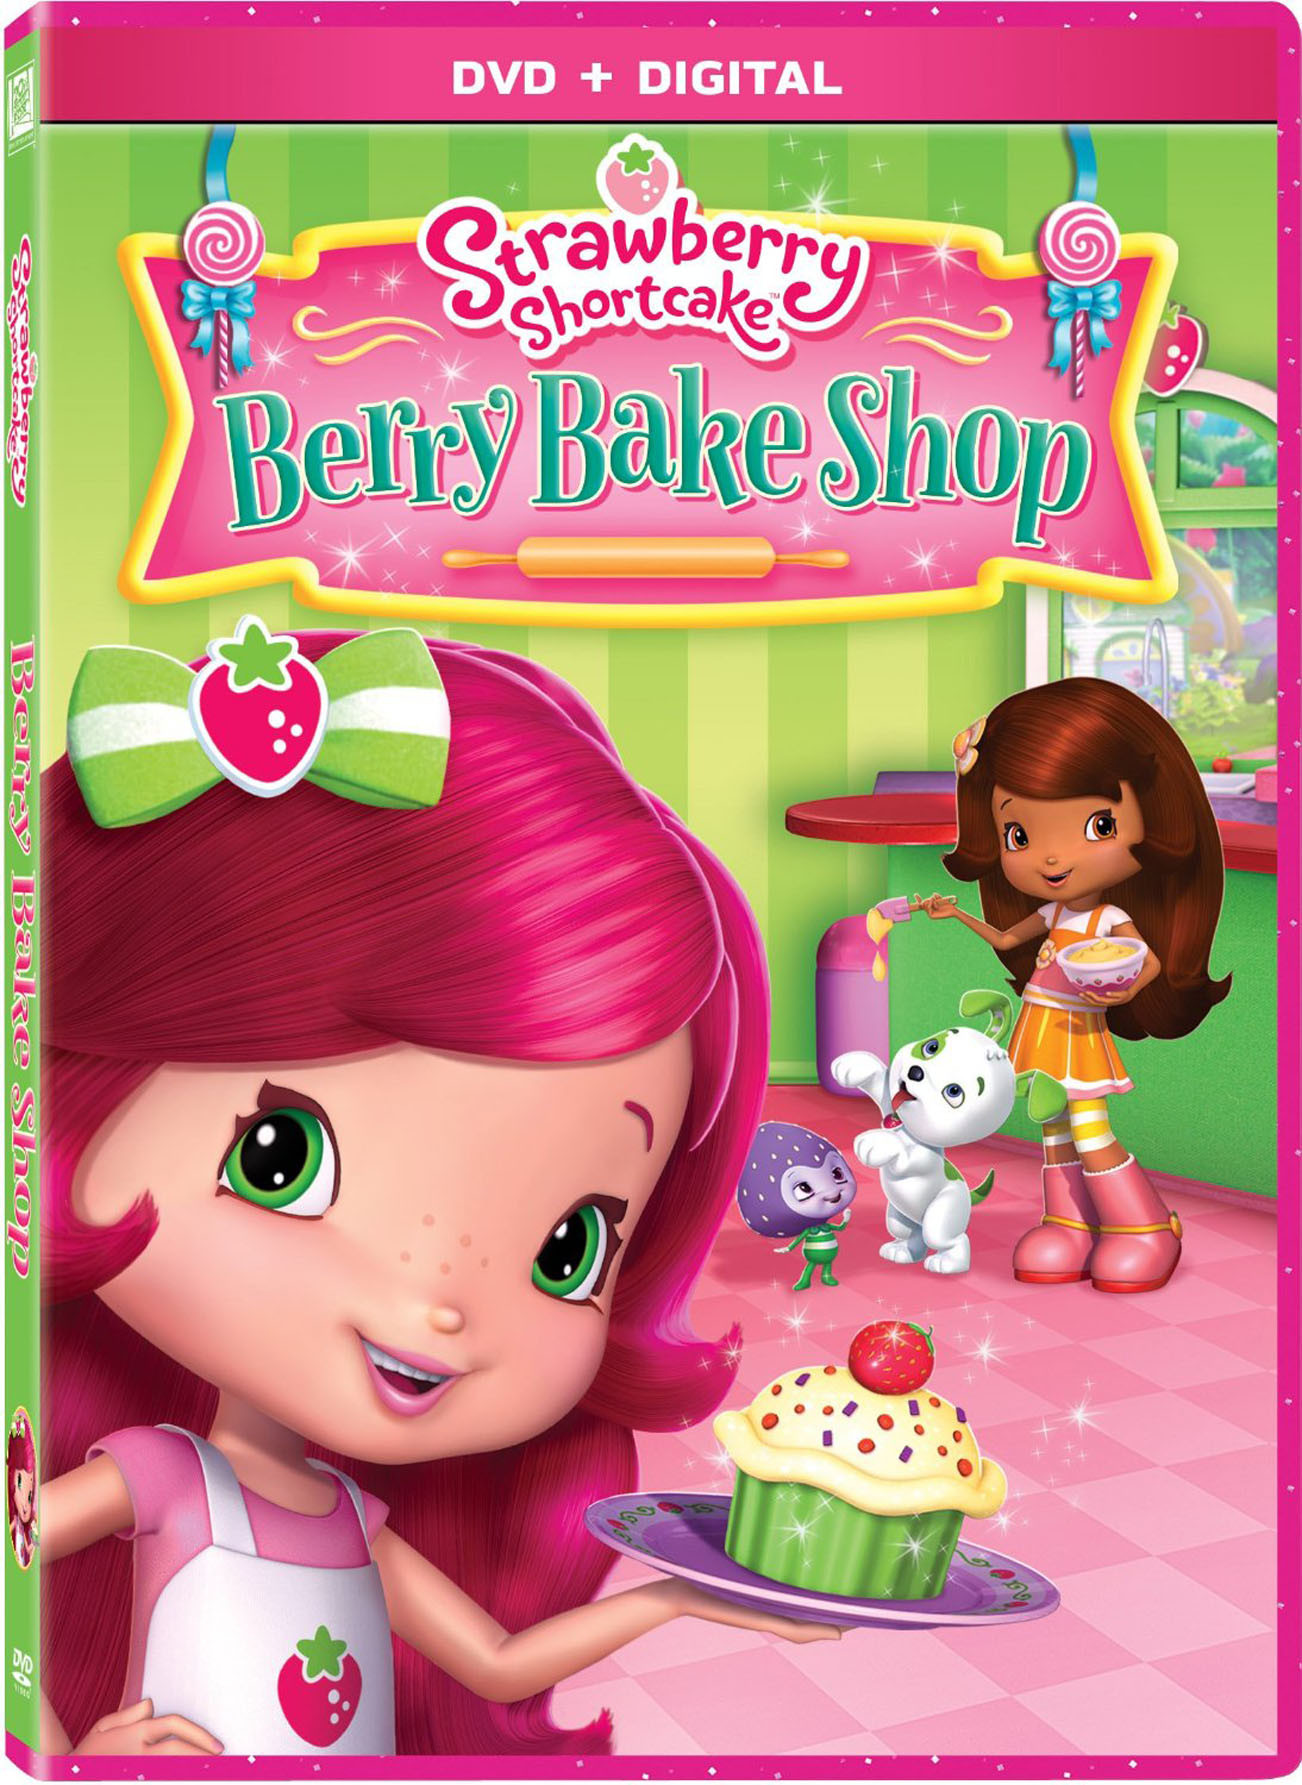 Strawberry Shortcake Dvds  s The Fall The Americans North Star More on